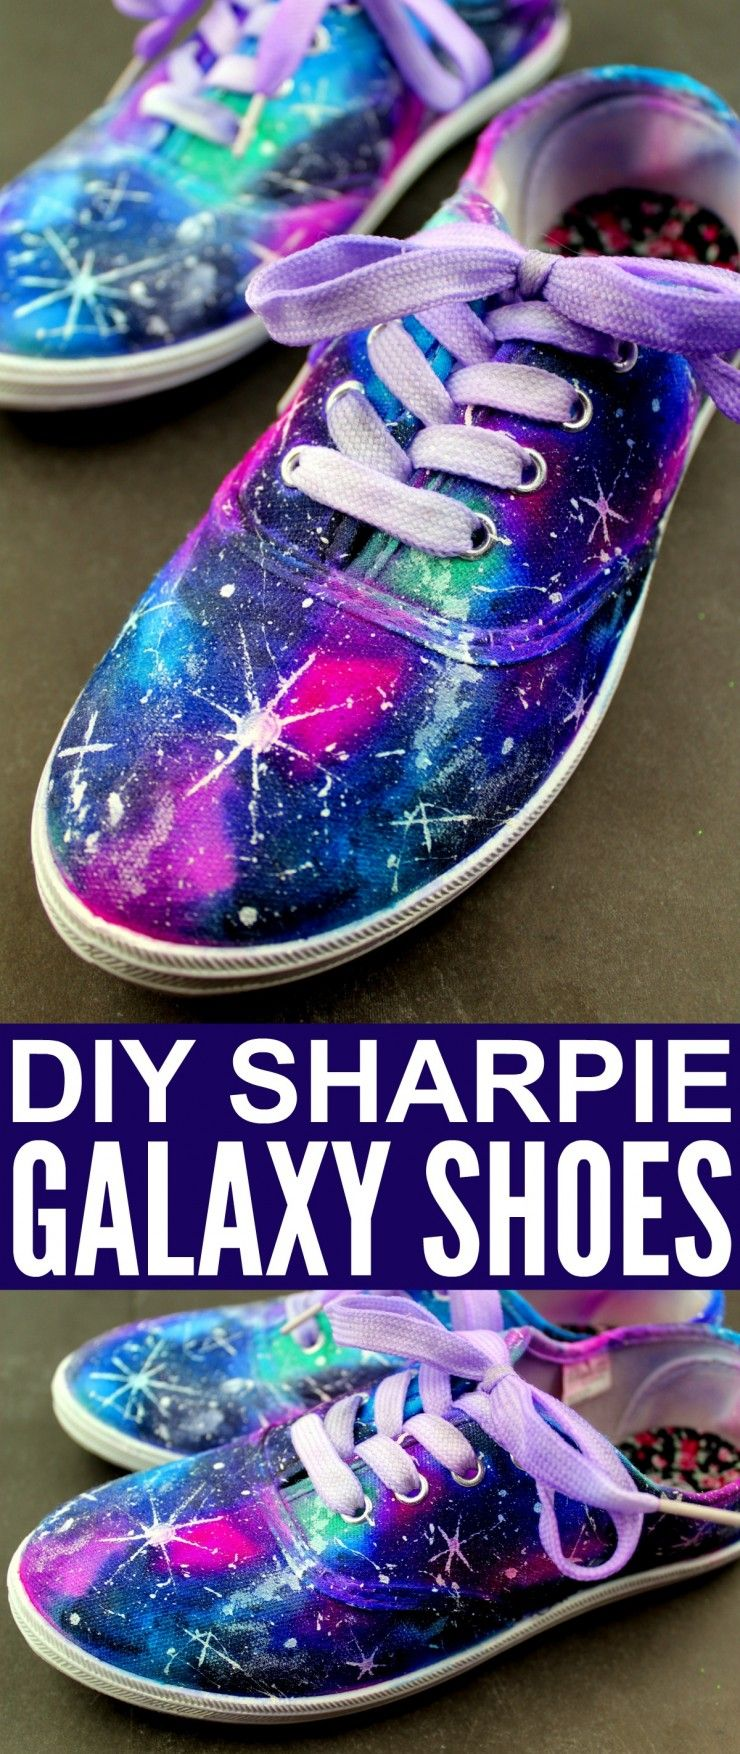 7b0bb909b04676 These DIY Sharpie Galaxy Shoes are a fun project you can make at home to  create your own customised shoes with a look that is out of this world!